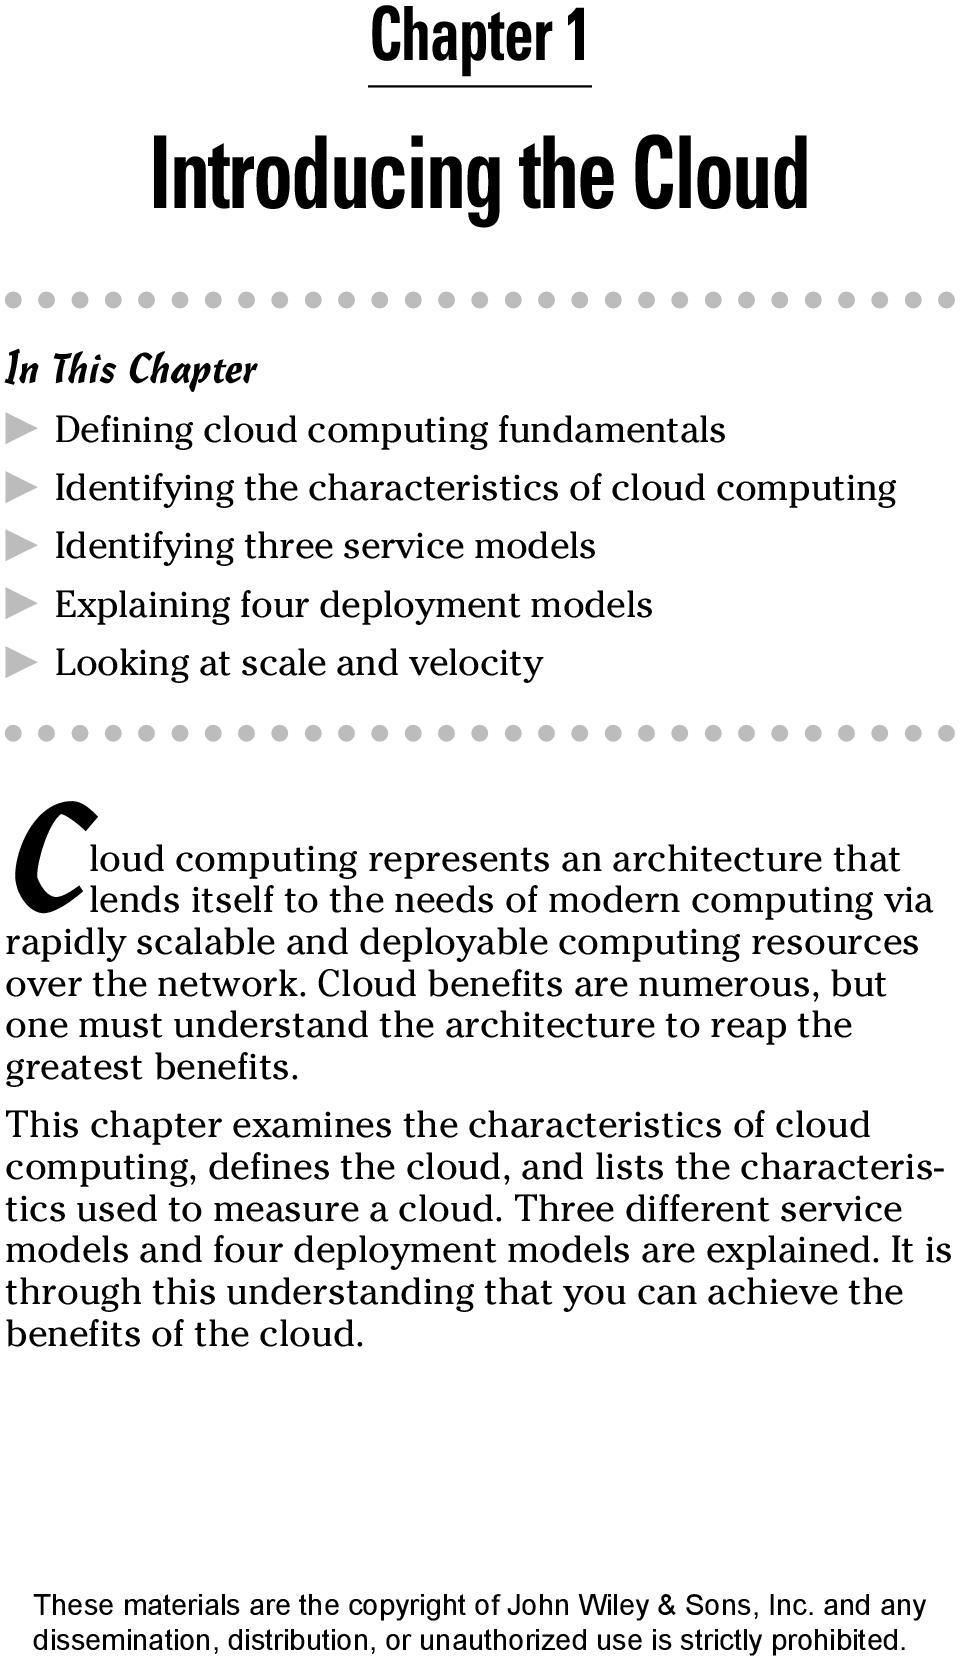 network. Cloud benefits are numerous, but one must understand the architecture to reap the greatest benefits.